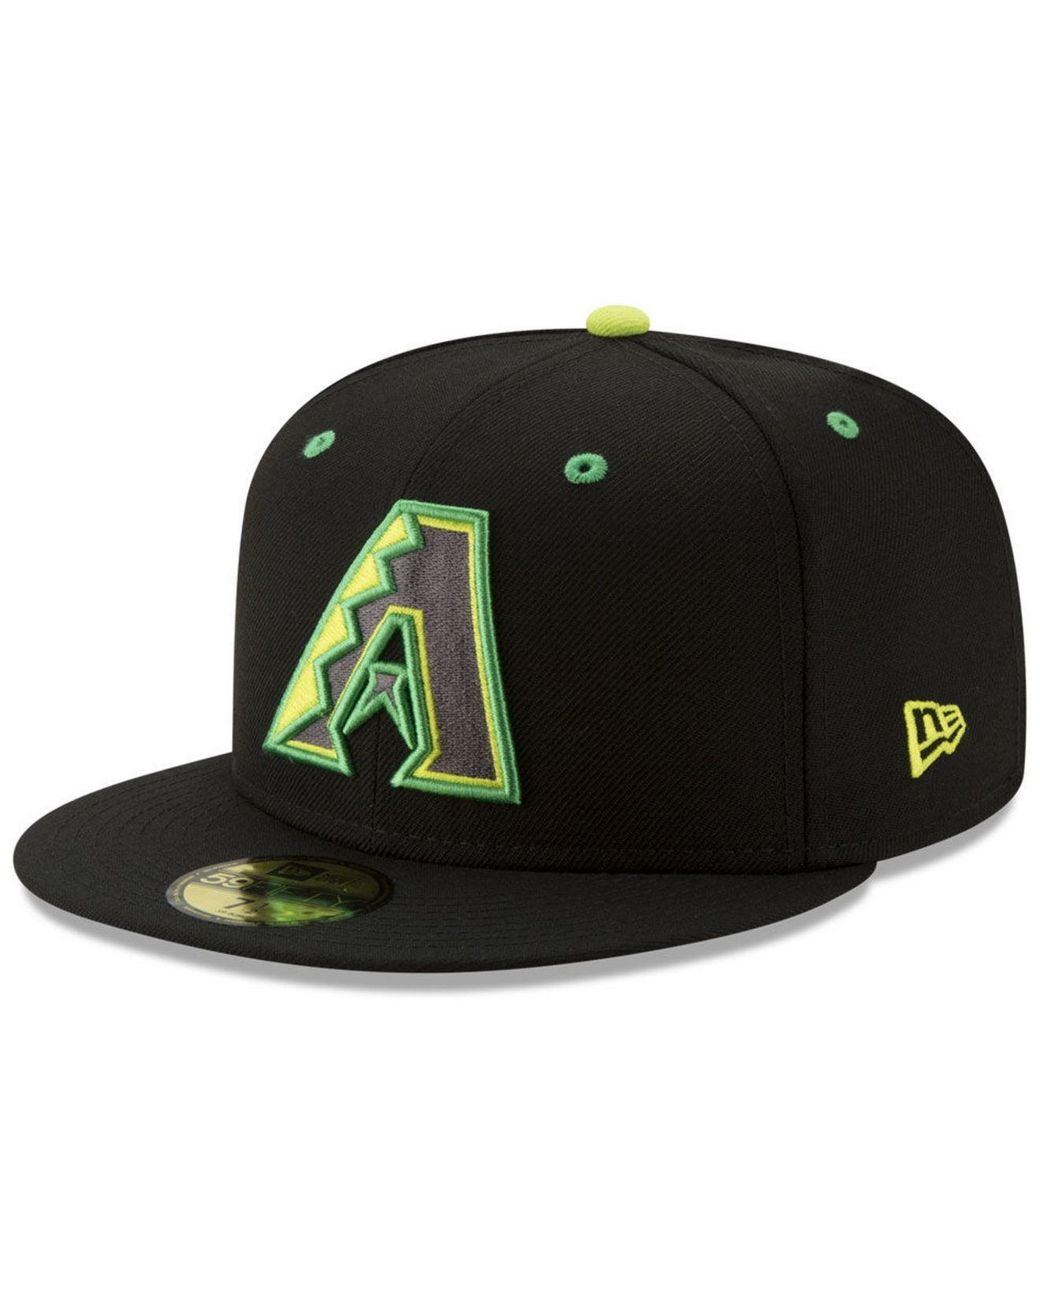 reputable site online shop price reduced KTZ Wool Arizona Diamondbacks Night Moves 59fifty Fitted Cap in ...